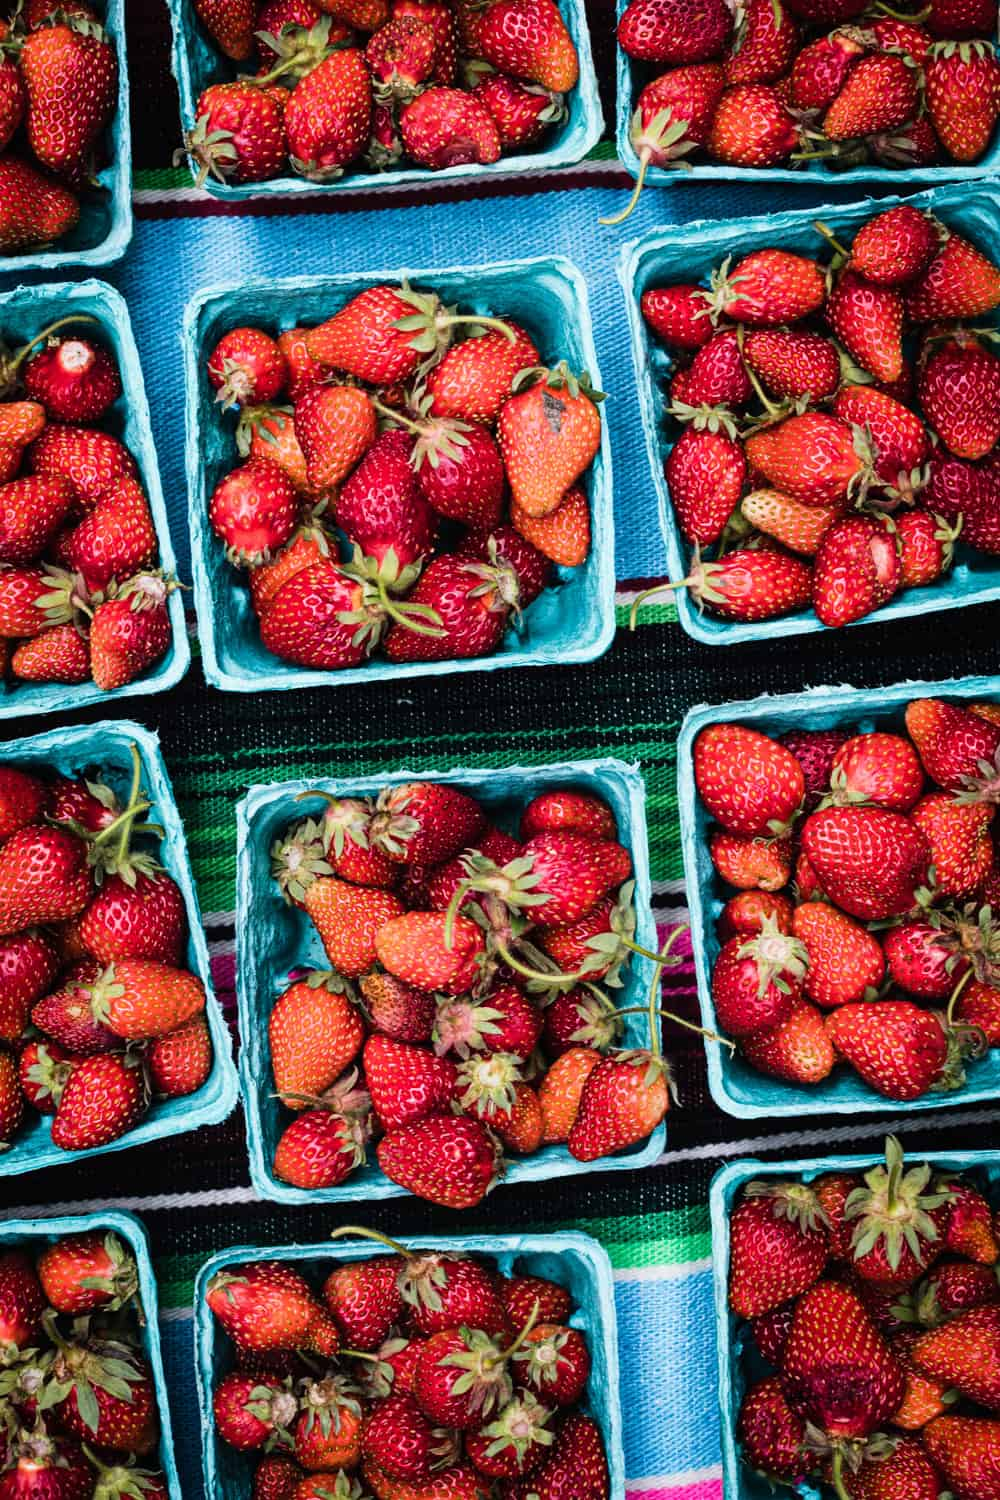 fresh strawberries at the Santa Fe Farmers Market.